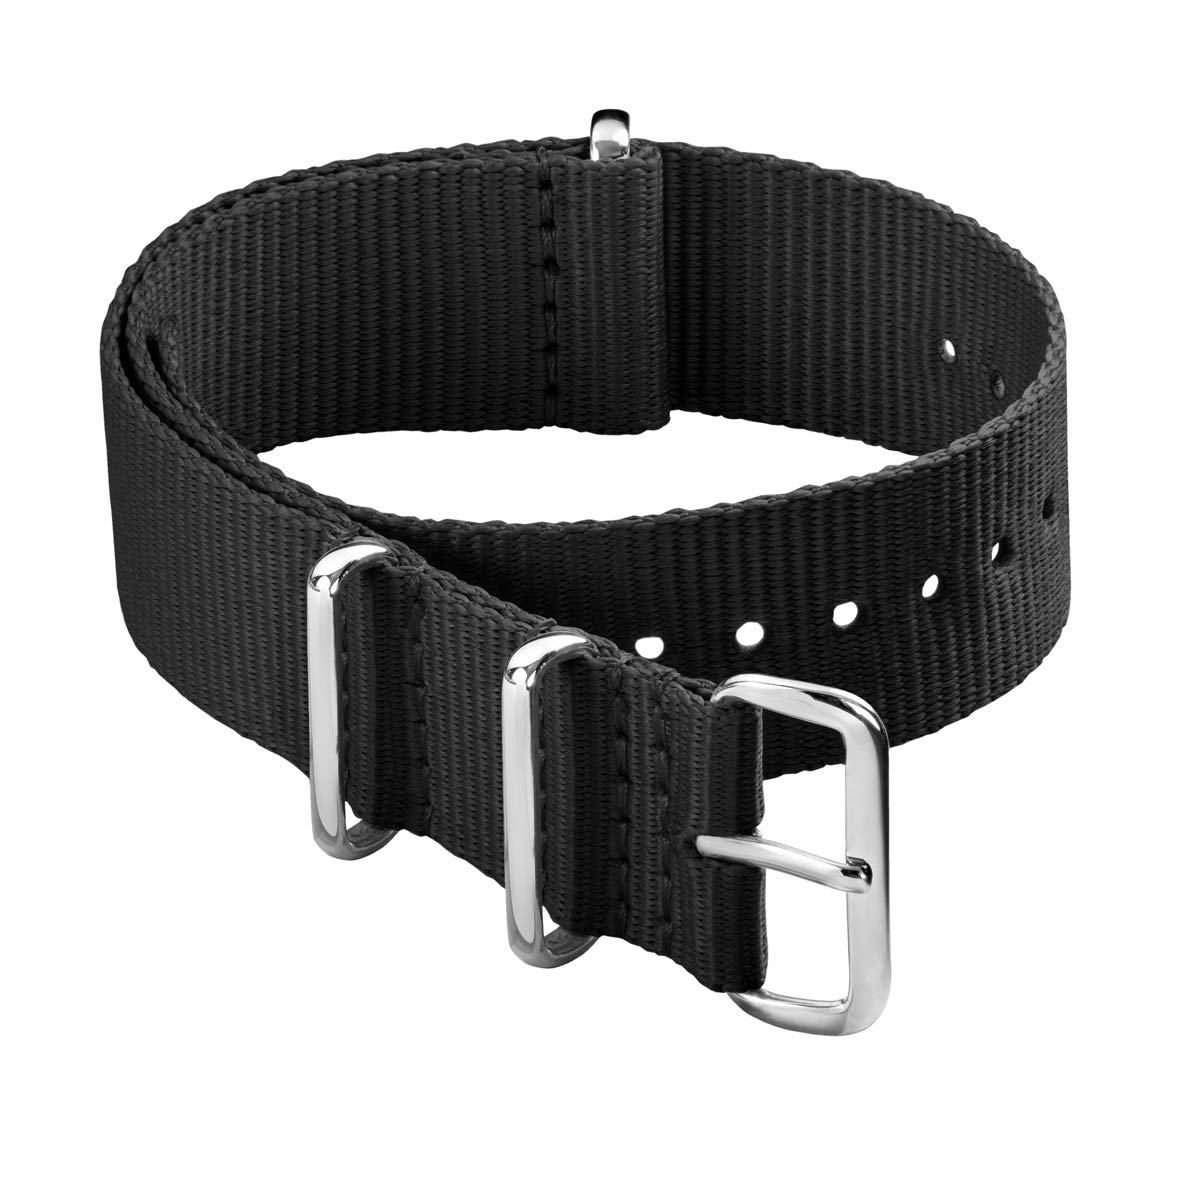 Archer Watch Straps - Classic Nylon NATO Straps | Choice of Color and Size (18mm 20mm 22mm 24mm)